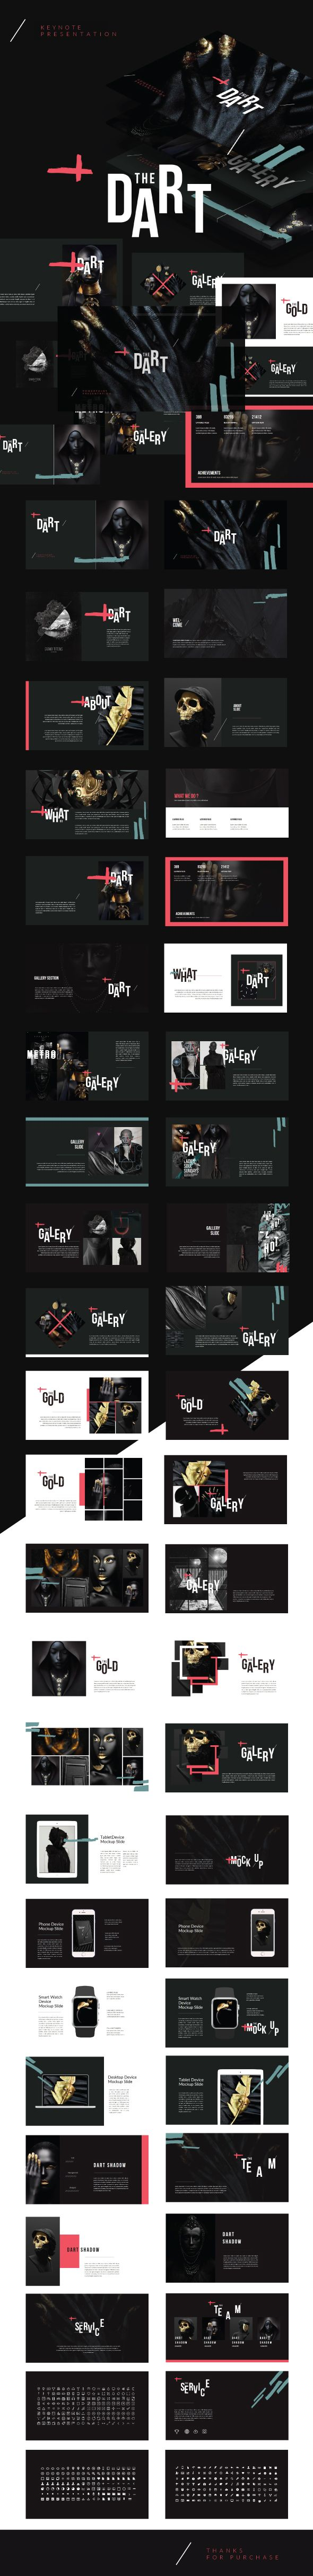 Dart - Creative Multipurpose Keynote Design Template - Creative Keynote Design Templates. Download here: https://graphicriver.net/item/dart-creative-multipurpose-keynote-template/19320815?ref=yinkira